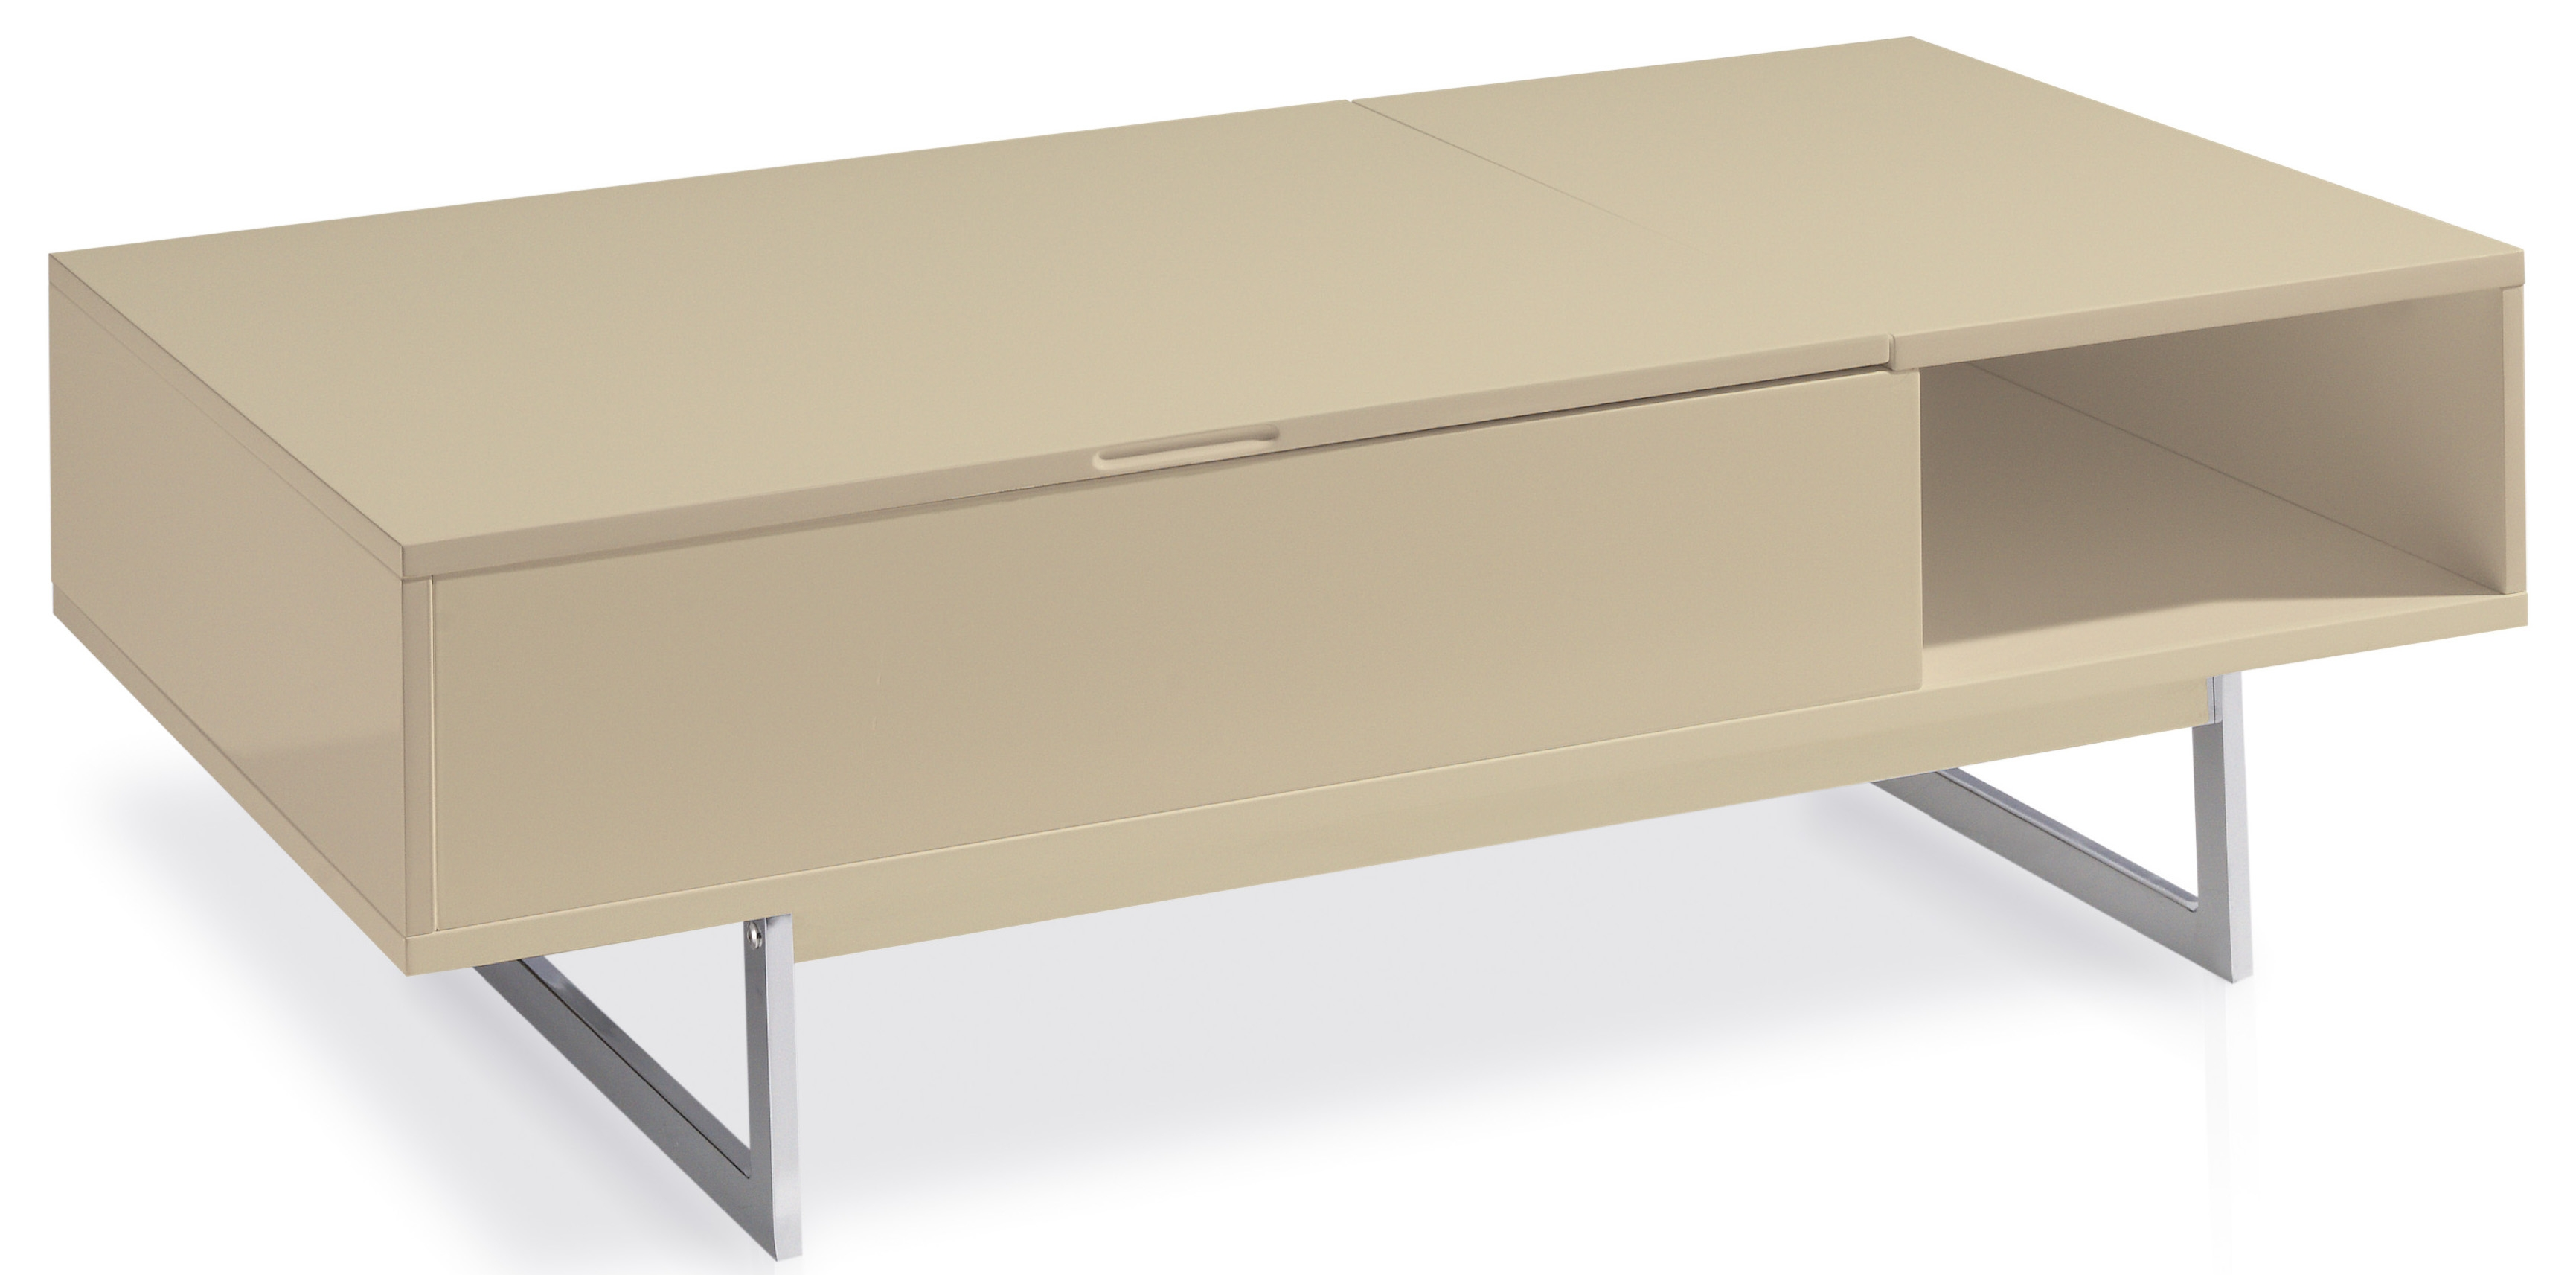 Table basse laquee beige conceptions de maison for Table basse laquee beige